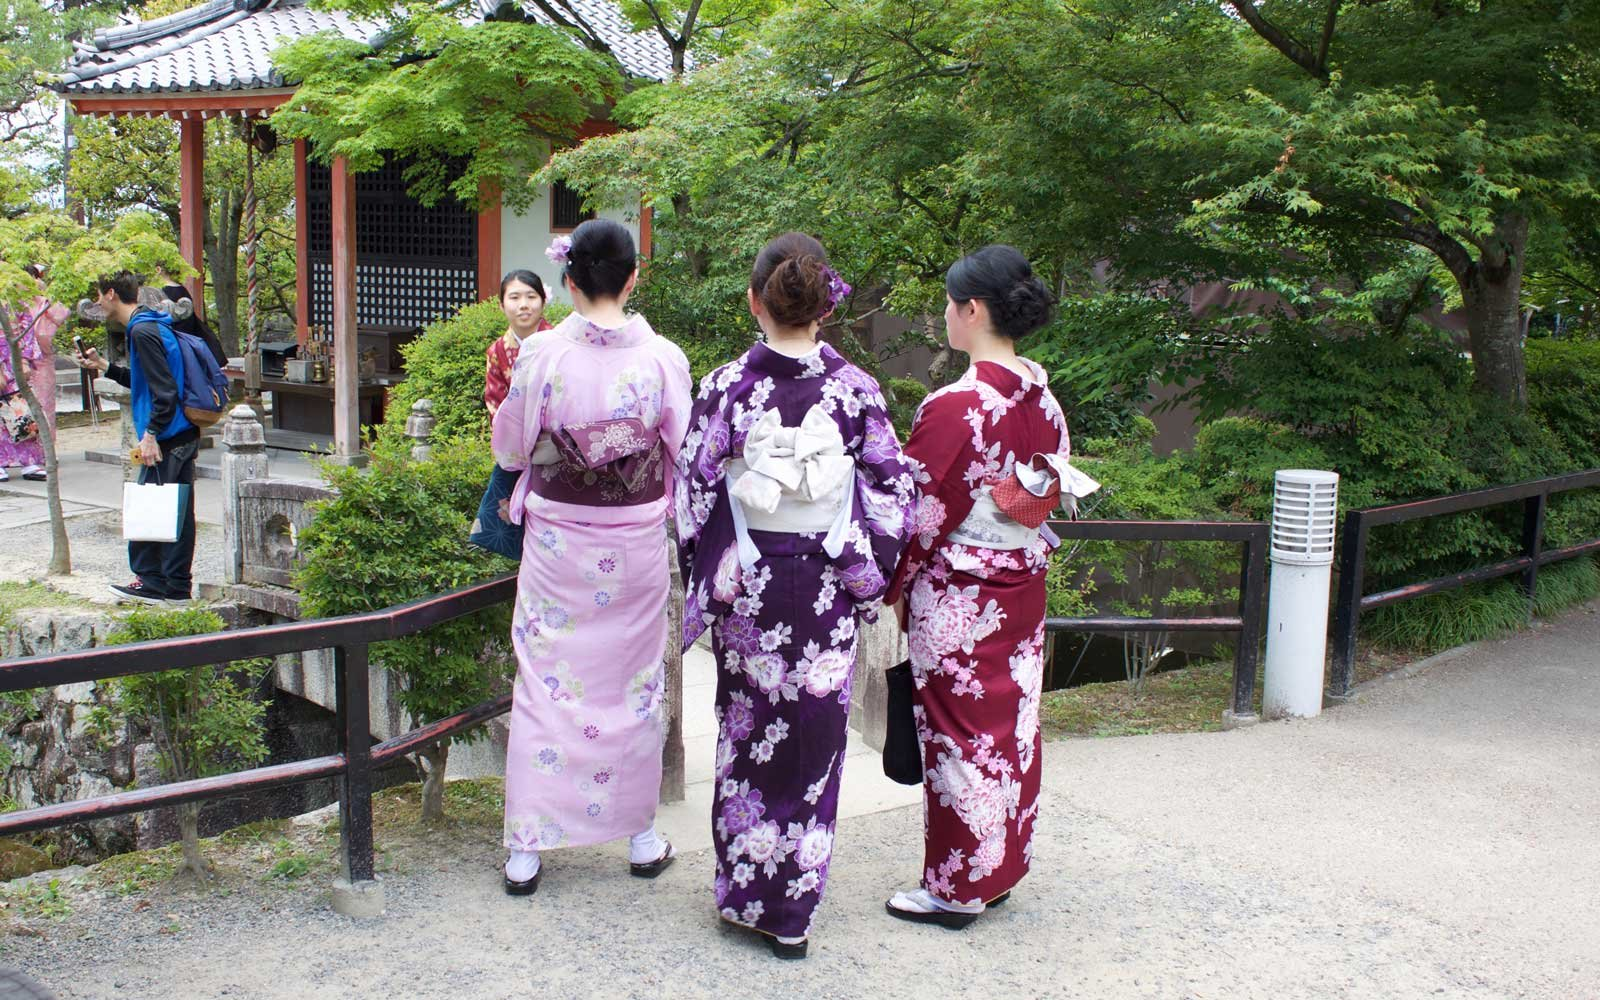 Women in Japanese kimonos